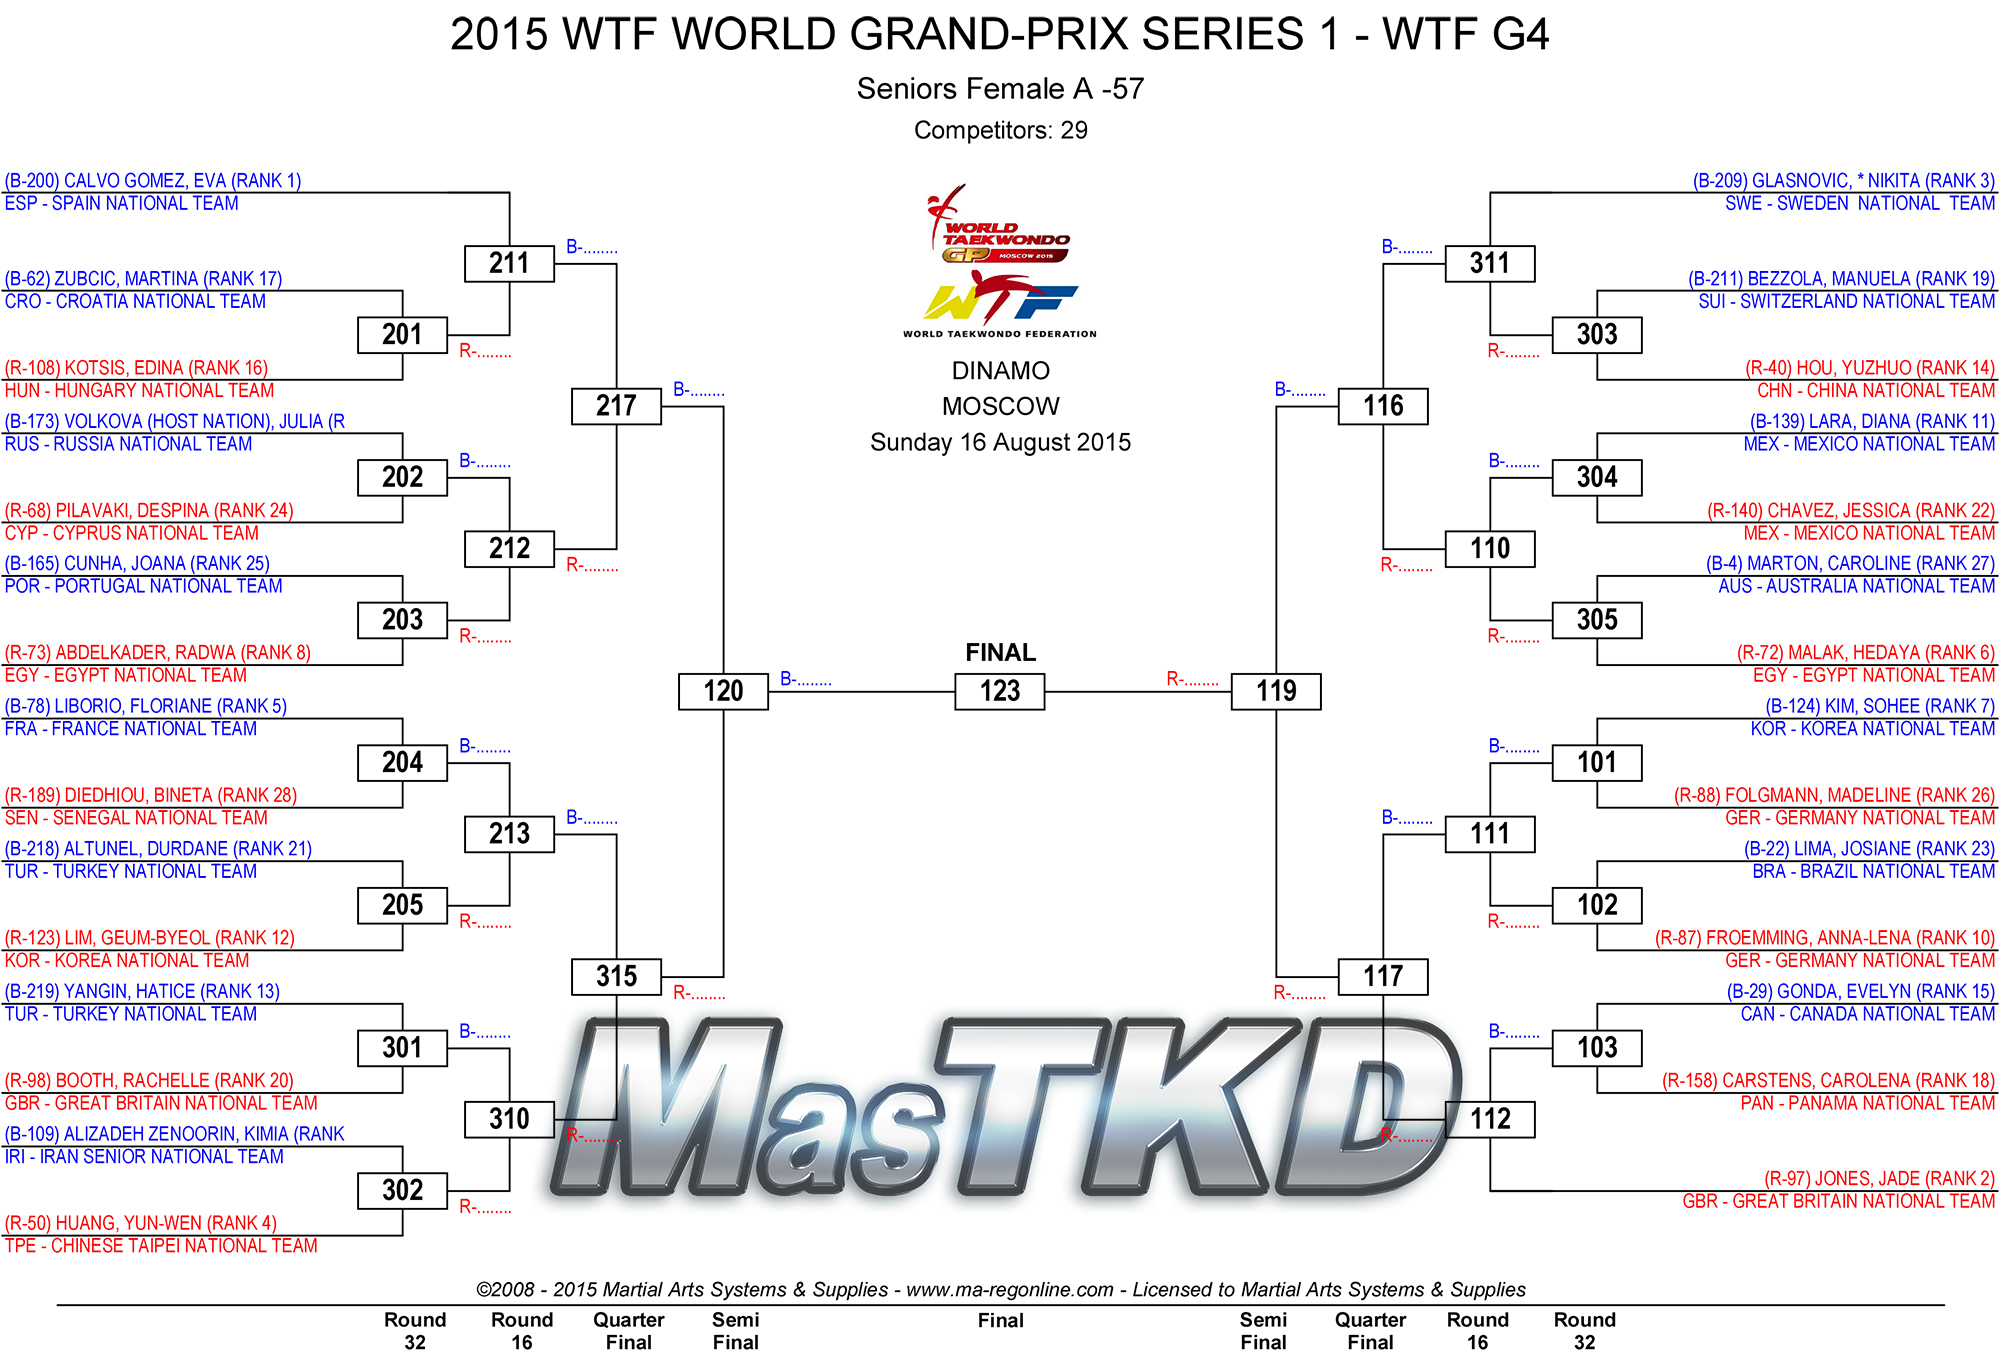 2015_WTF_WORLD_GRAND-PRIX_SERIES_1_DRAW_DAY-3_F-57